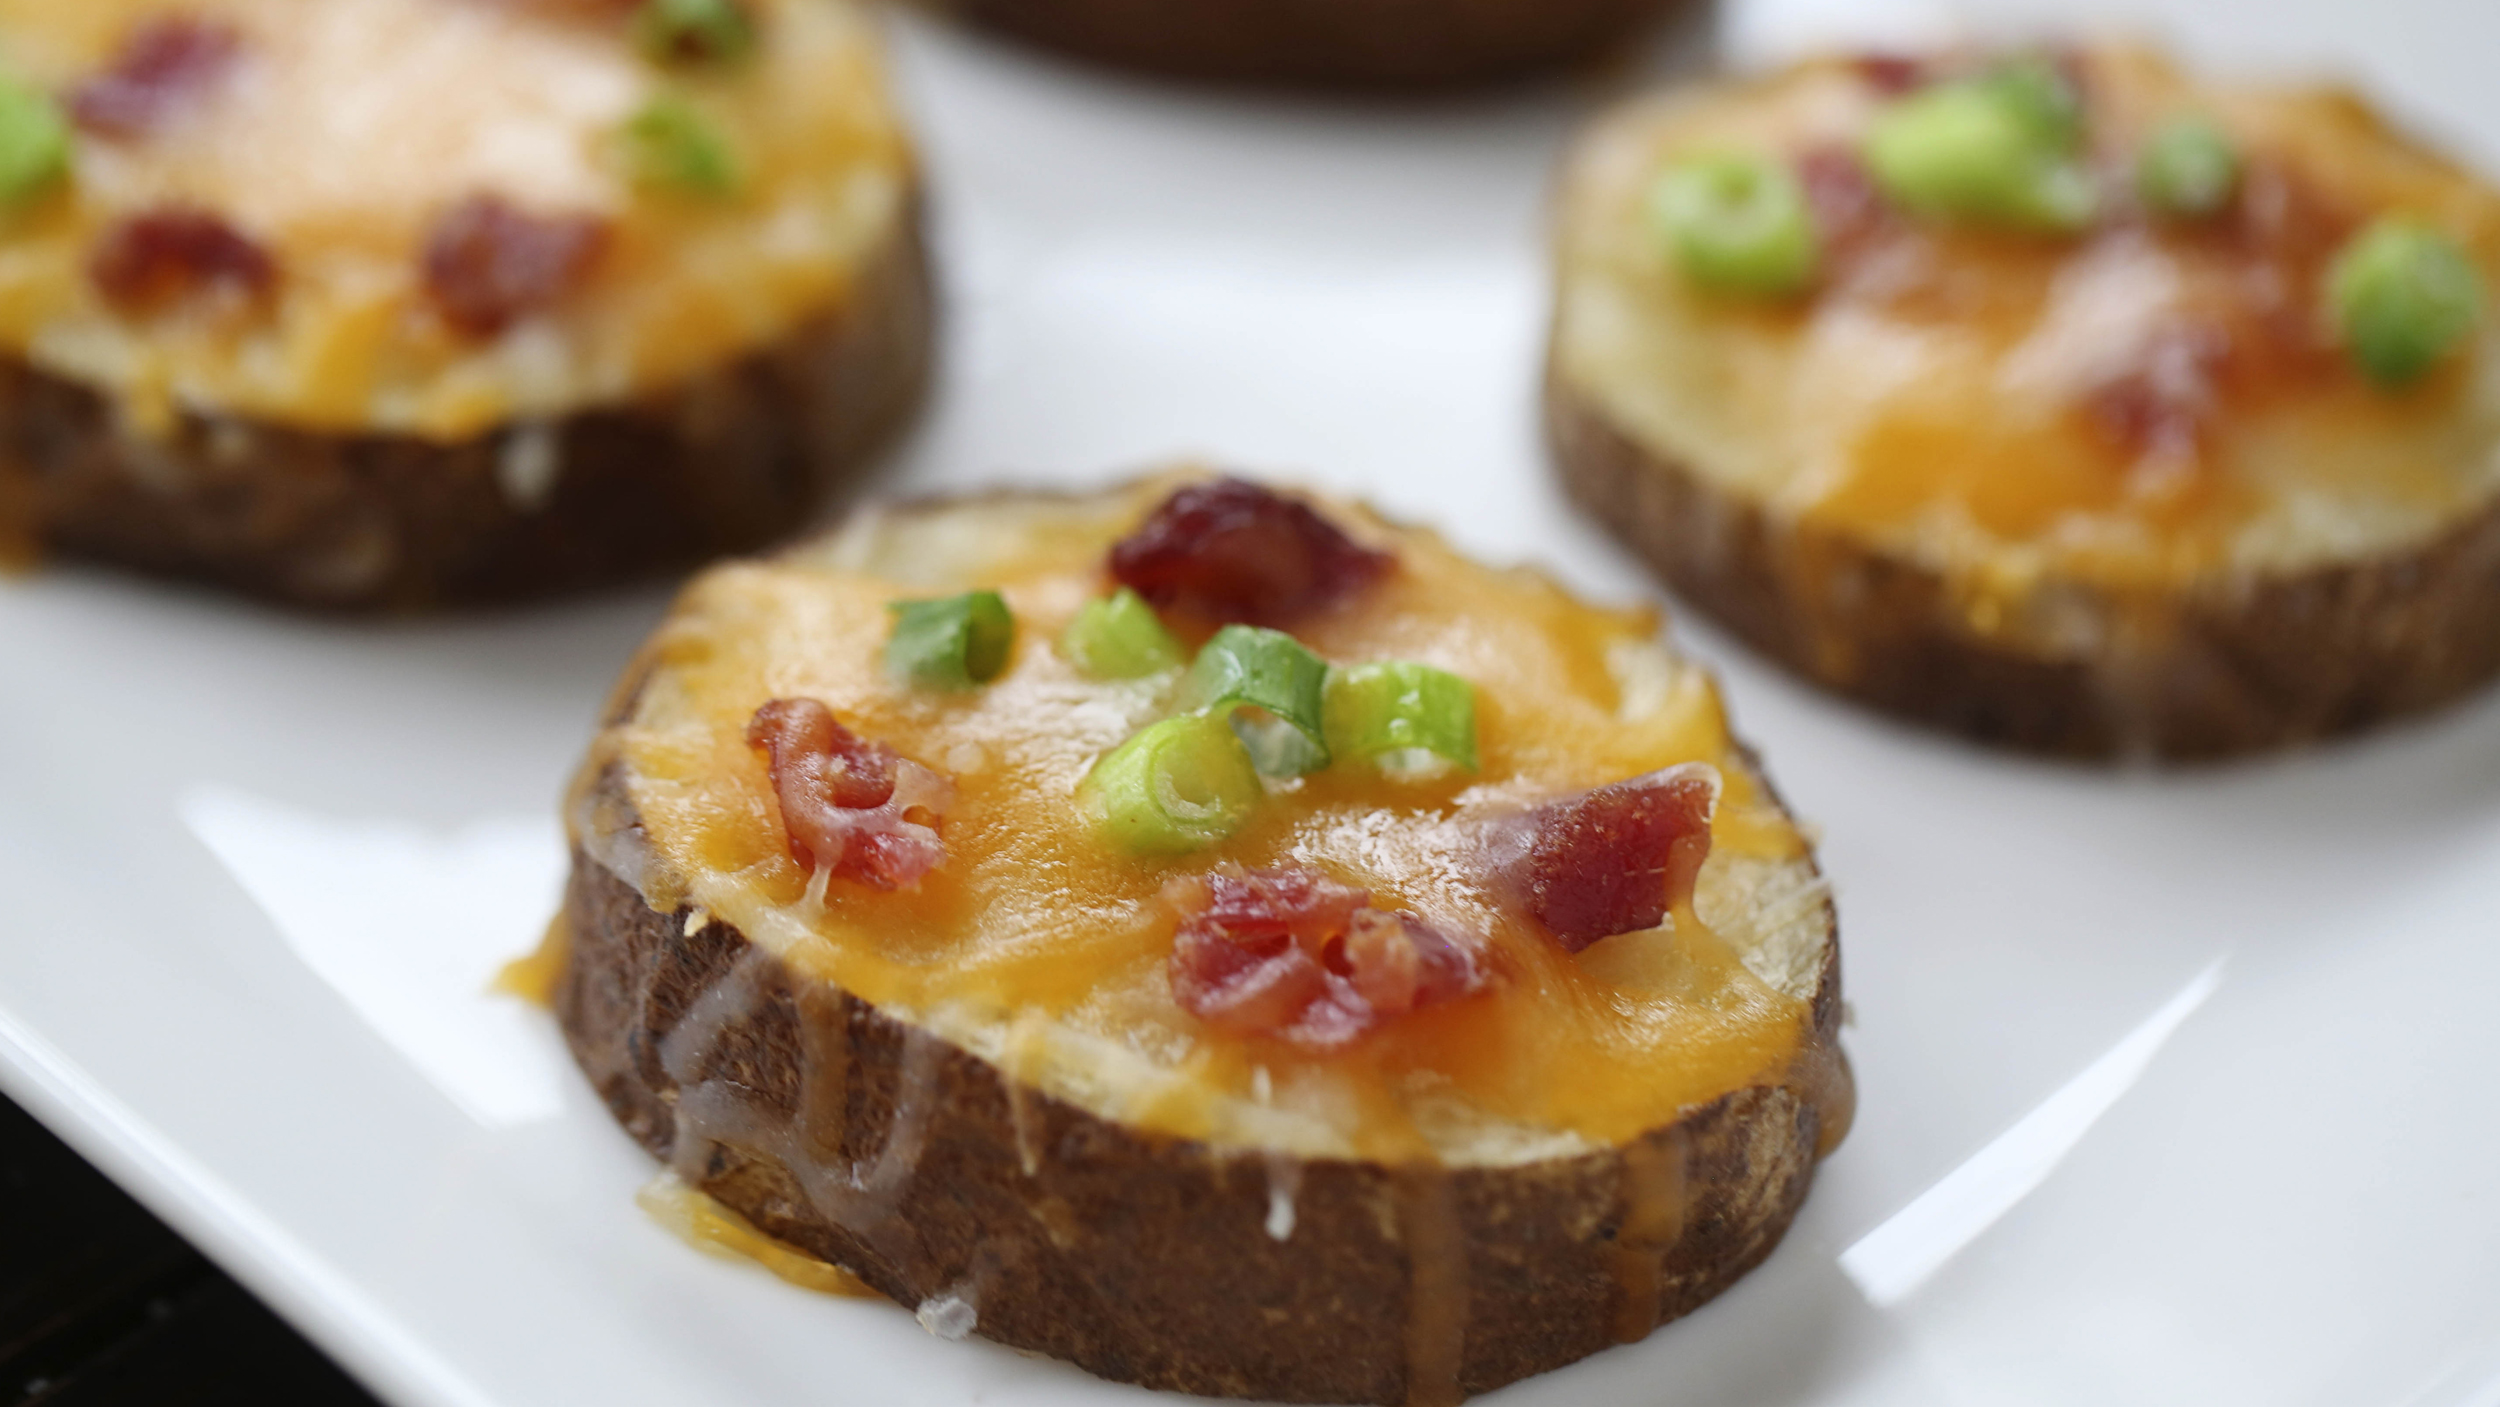 potato skins recipes that are perfect for any party - TODAY.com